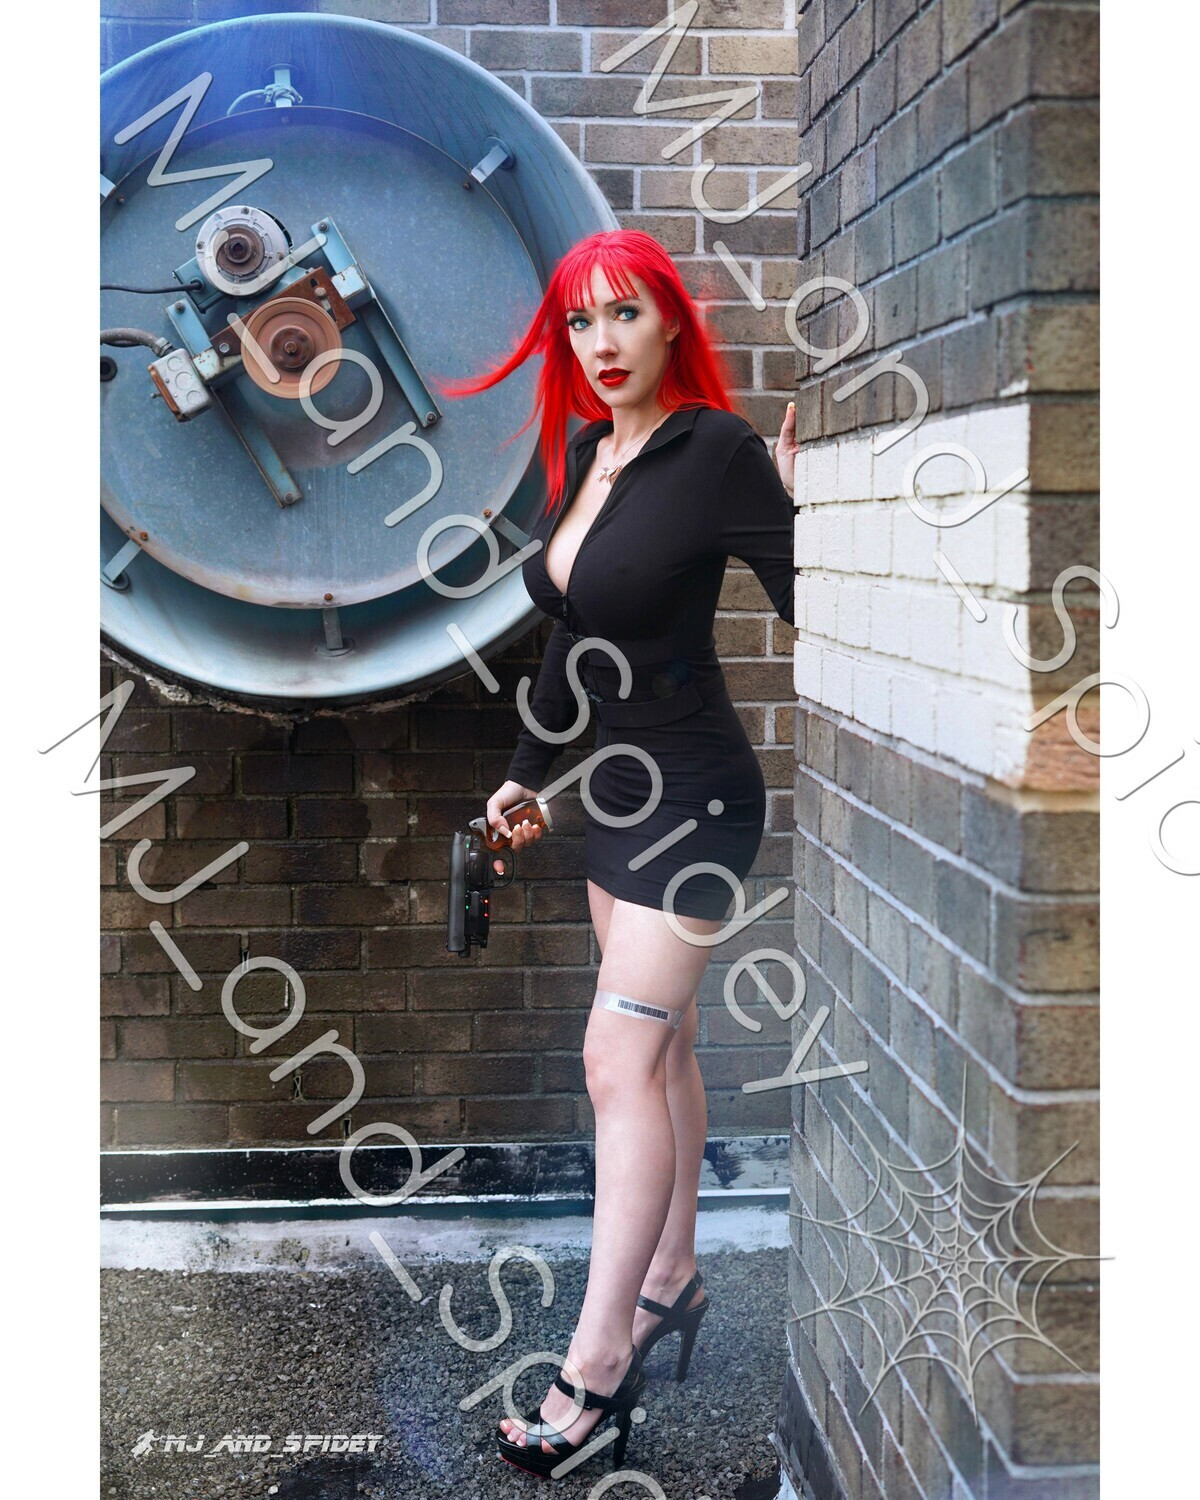 Cyberpunk - Mary Jane Watson - Replicant - No. 1 - 8x10 Cosplay Print (@MJ_and_Spidey, Sci Fi, Science Fiction, Blade Runner)